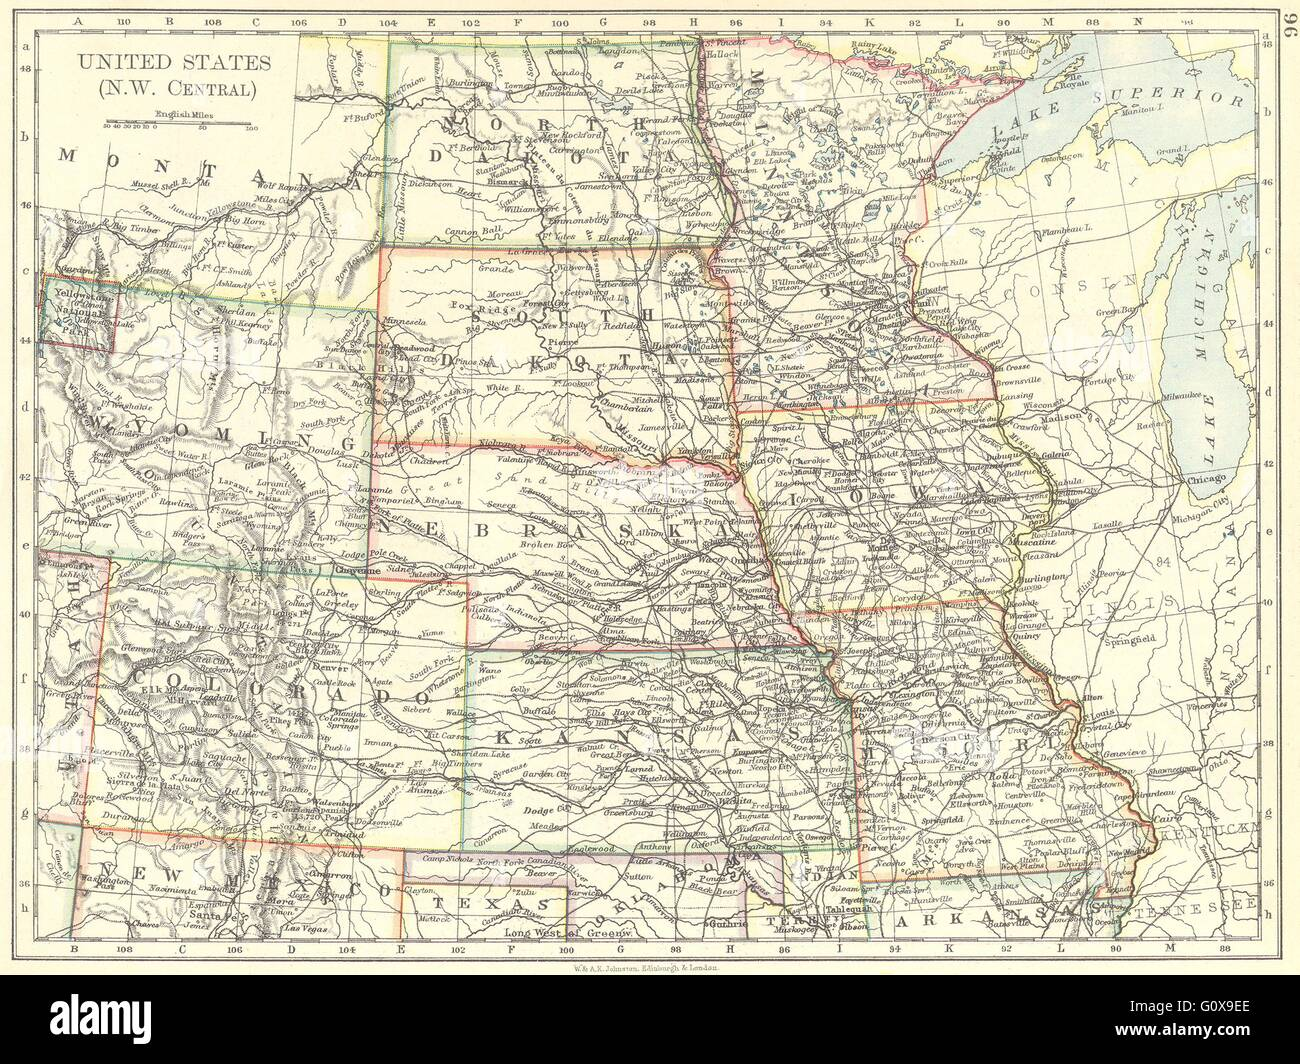 South Colorado On Us Map Globalinterco - Us map redrawn background